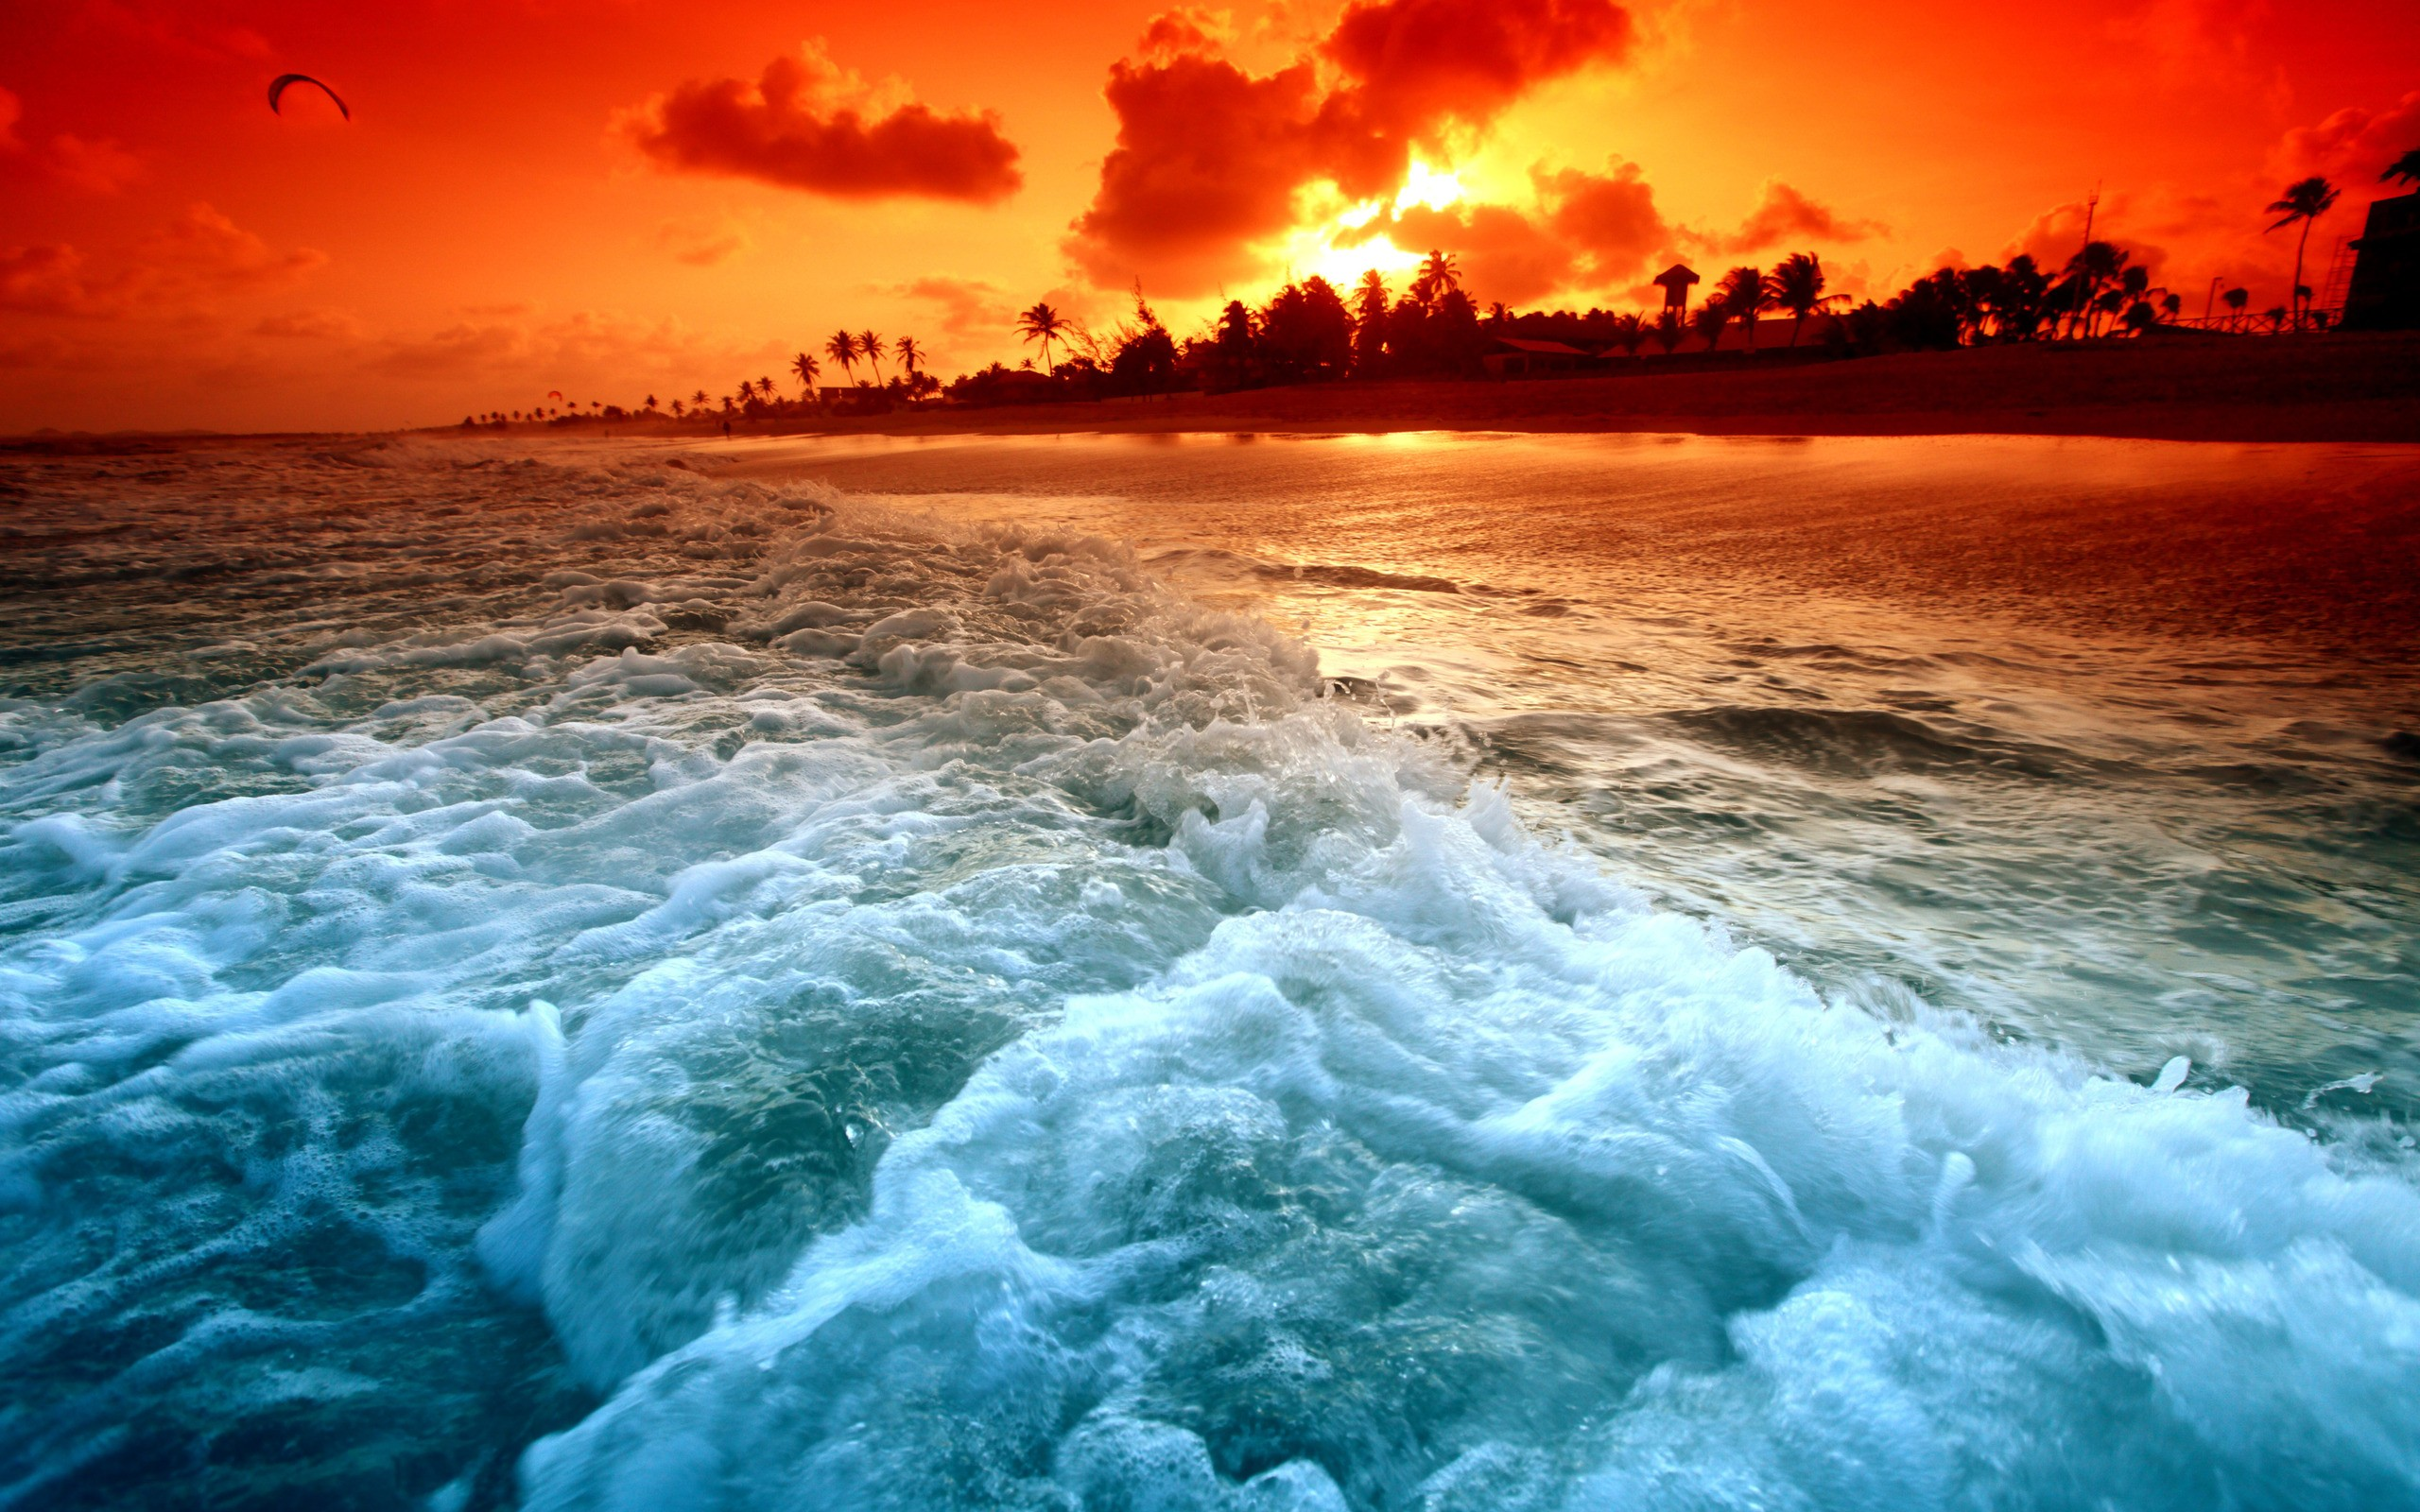 Paradise, Ocean Waves at Sunset